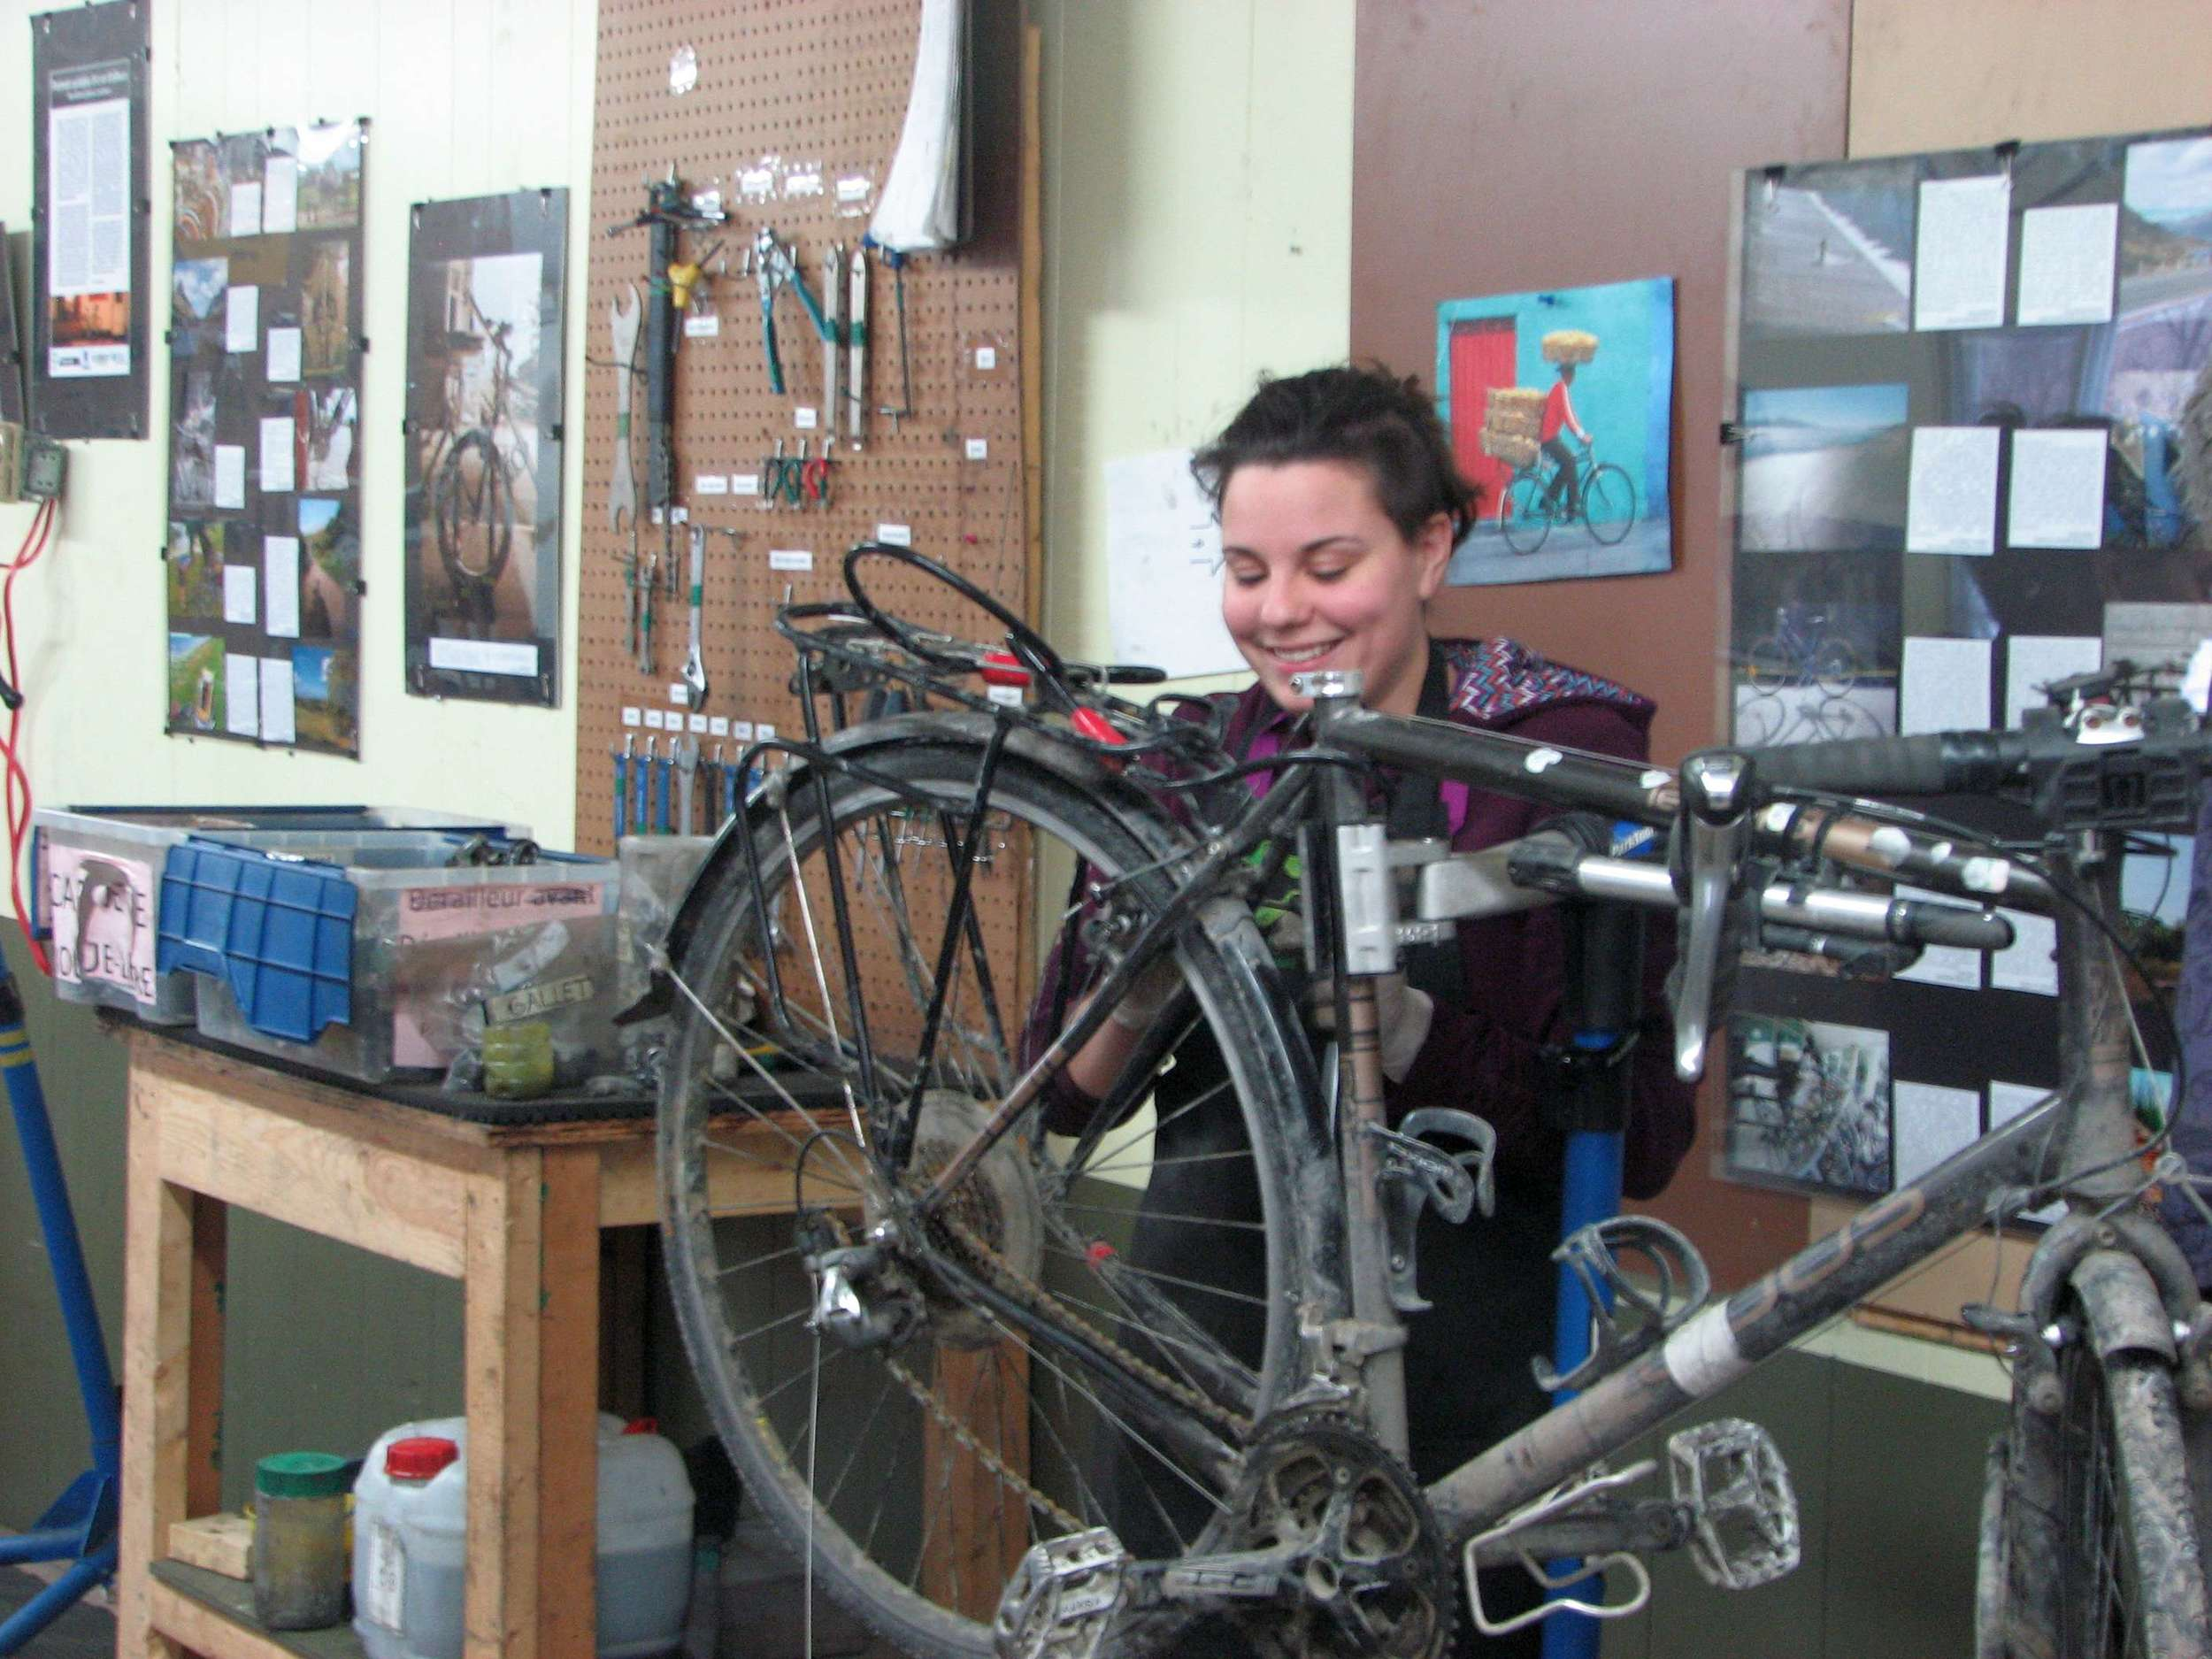 Myriam who fixed my derailleur & tuned up the bike.